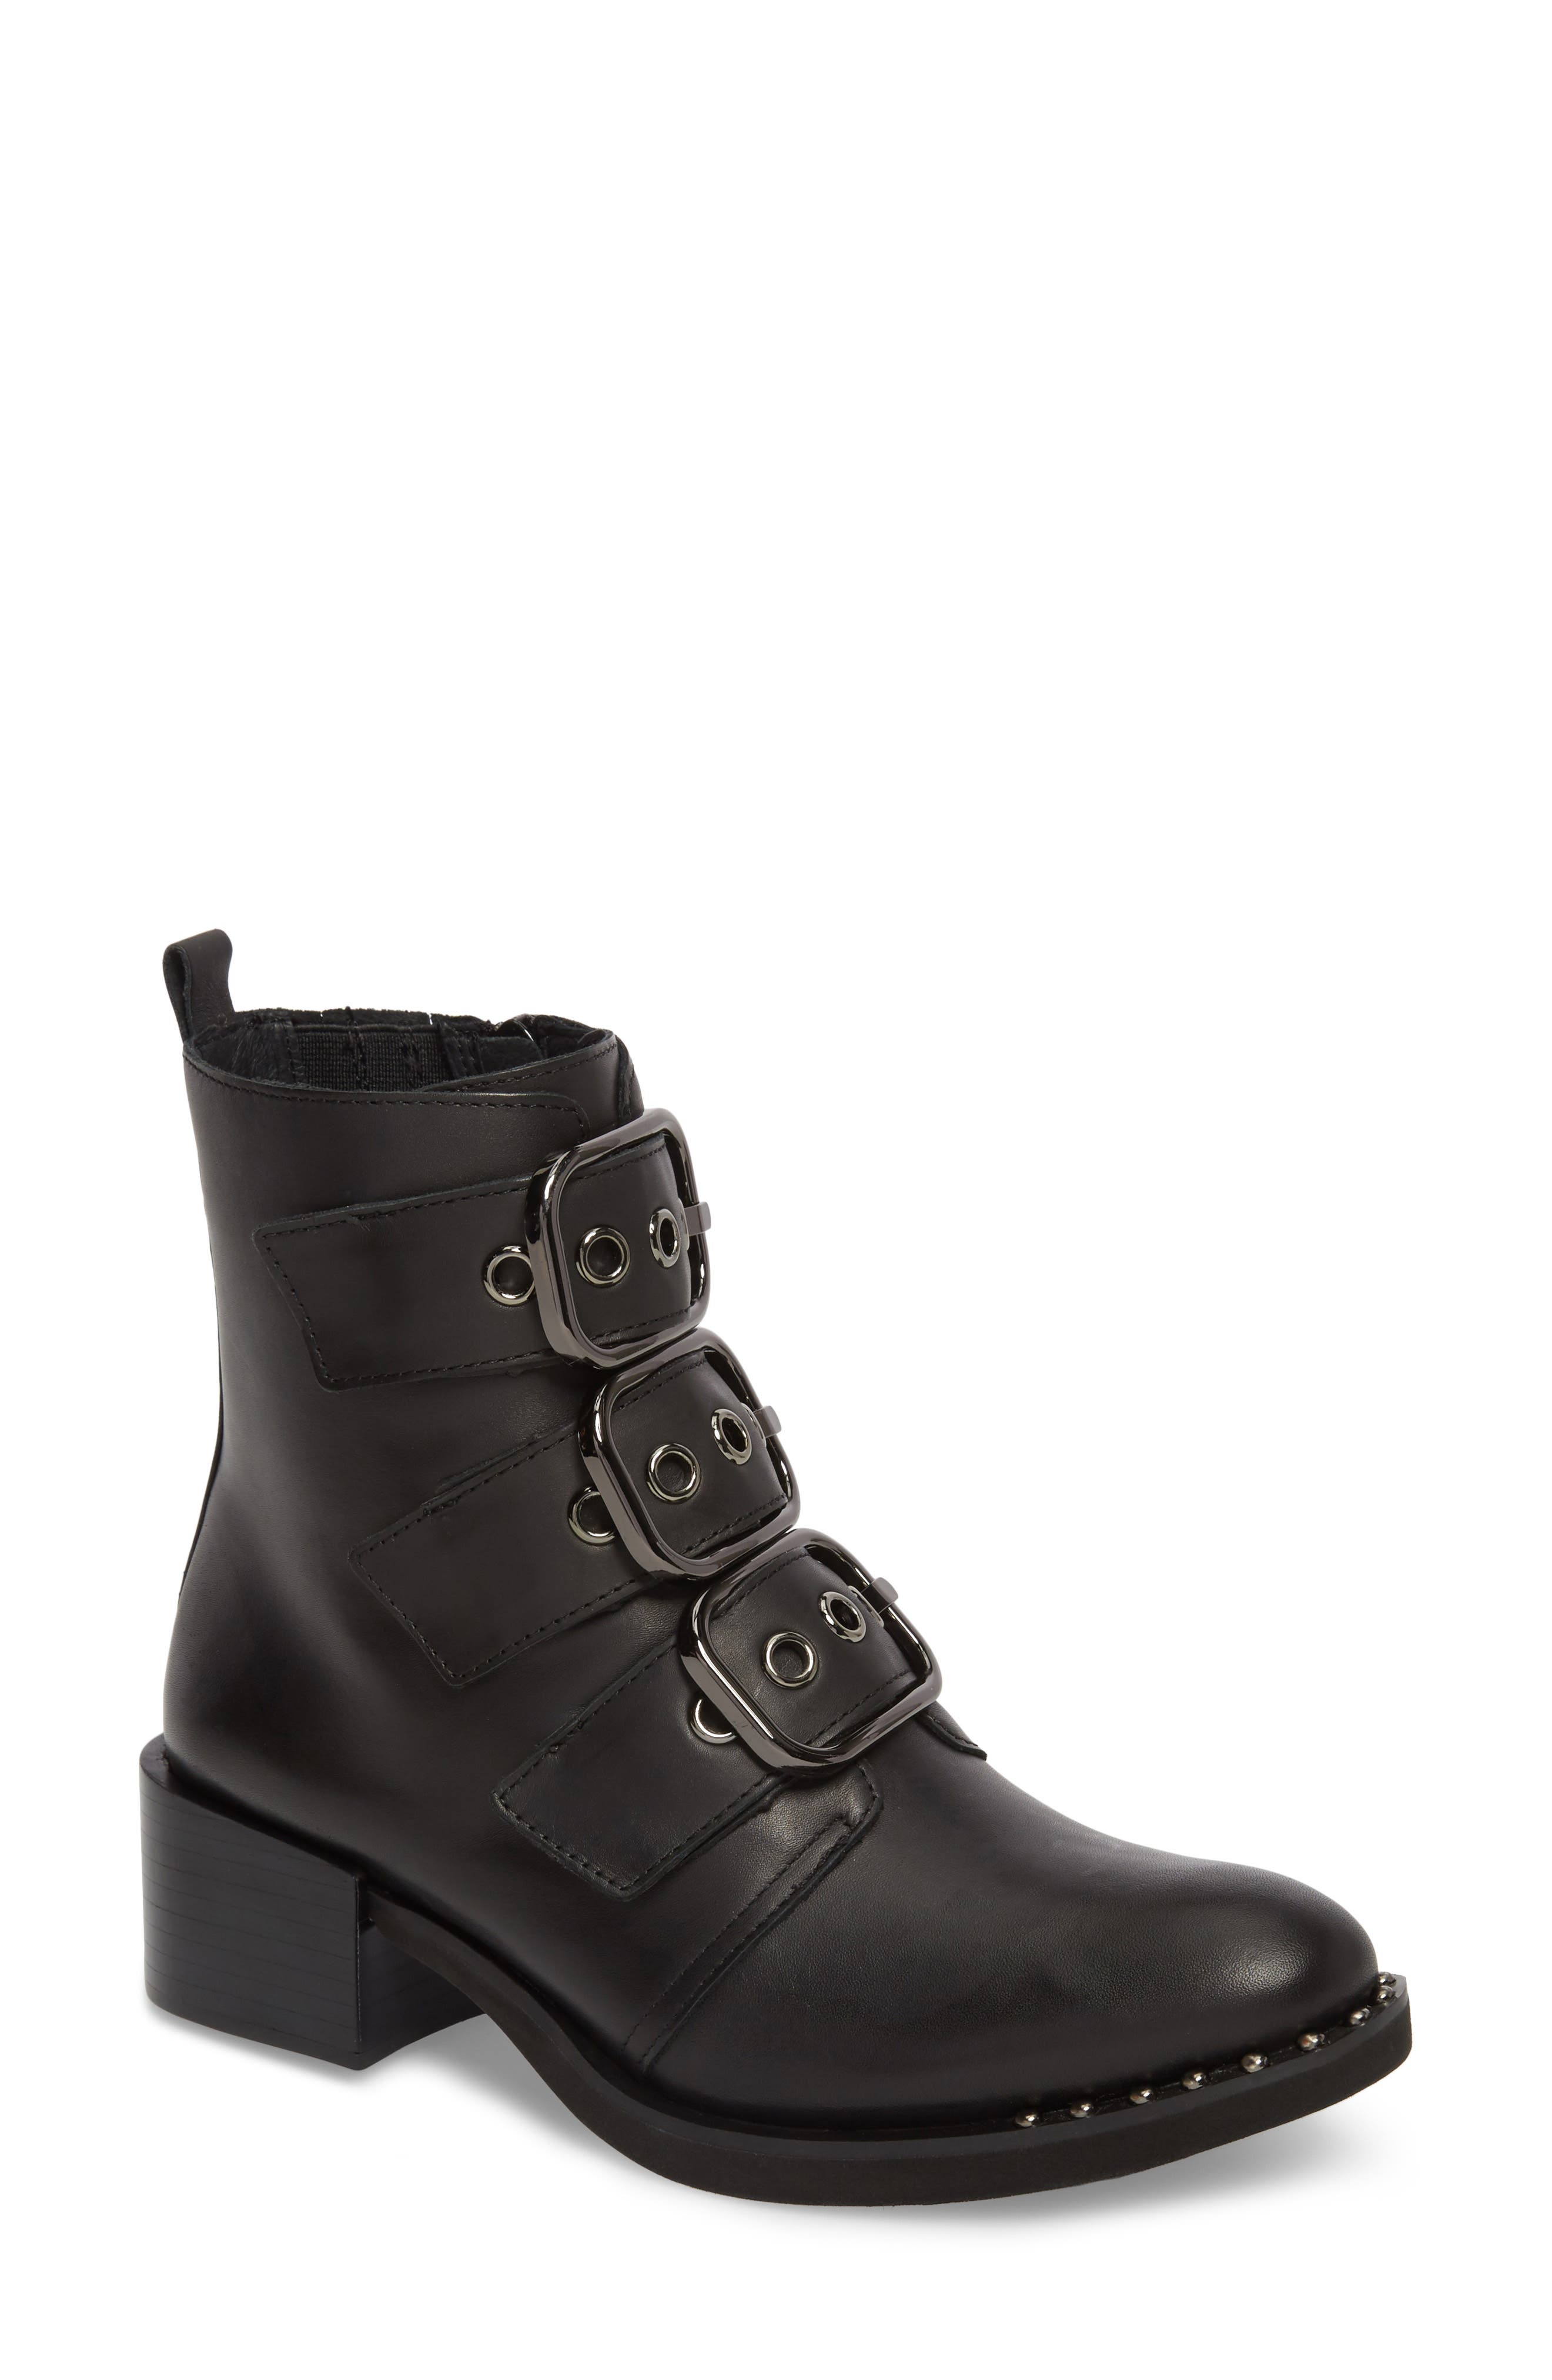 Todd Buckle Strap Bootie,                             Main thumbnail 1, color,                             Black